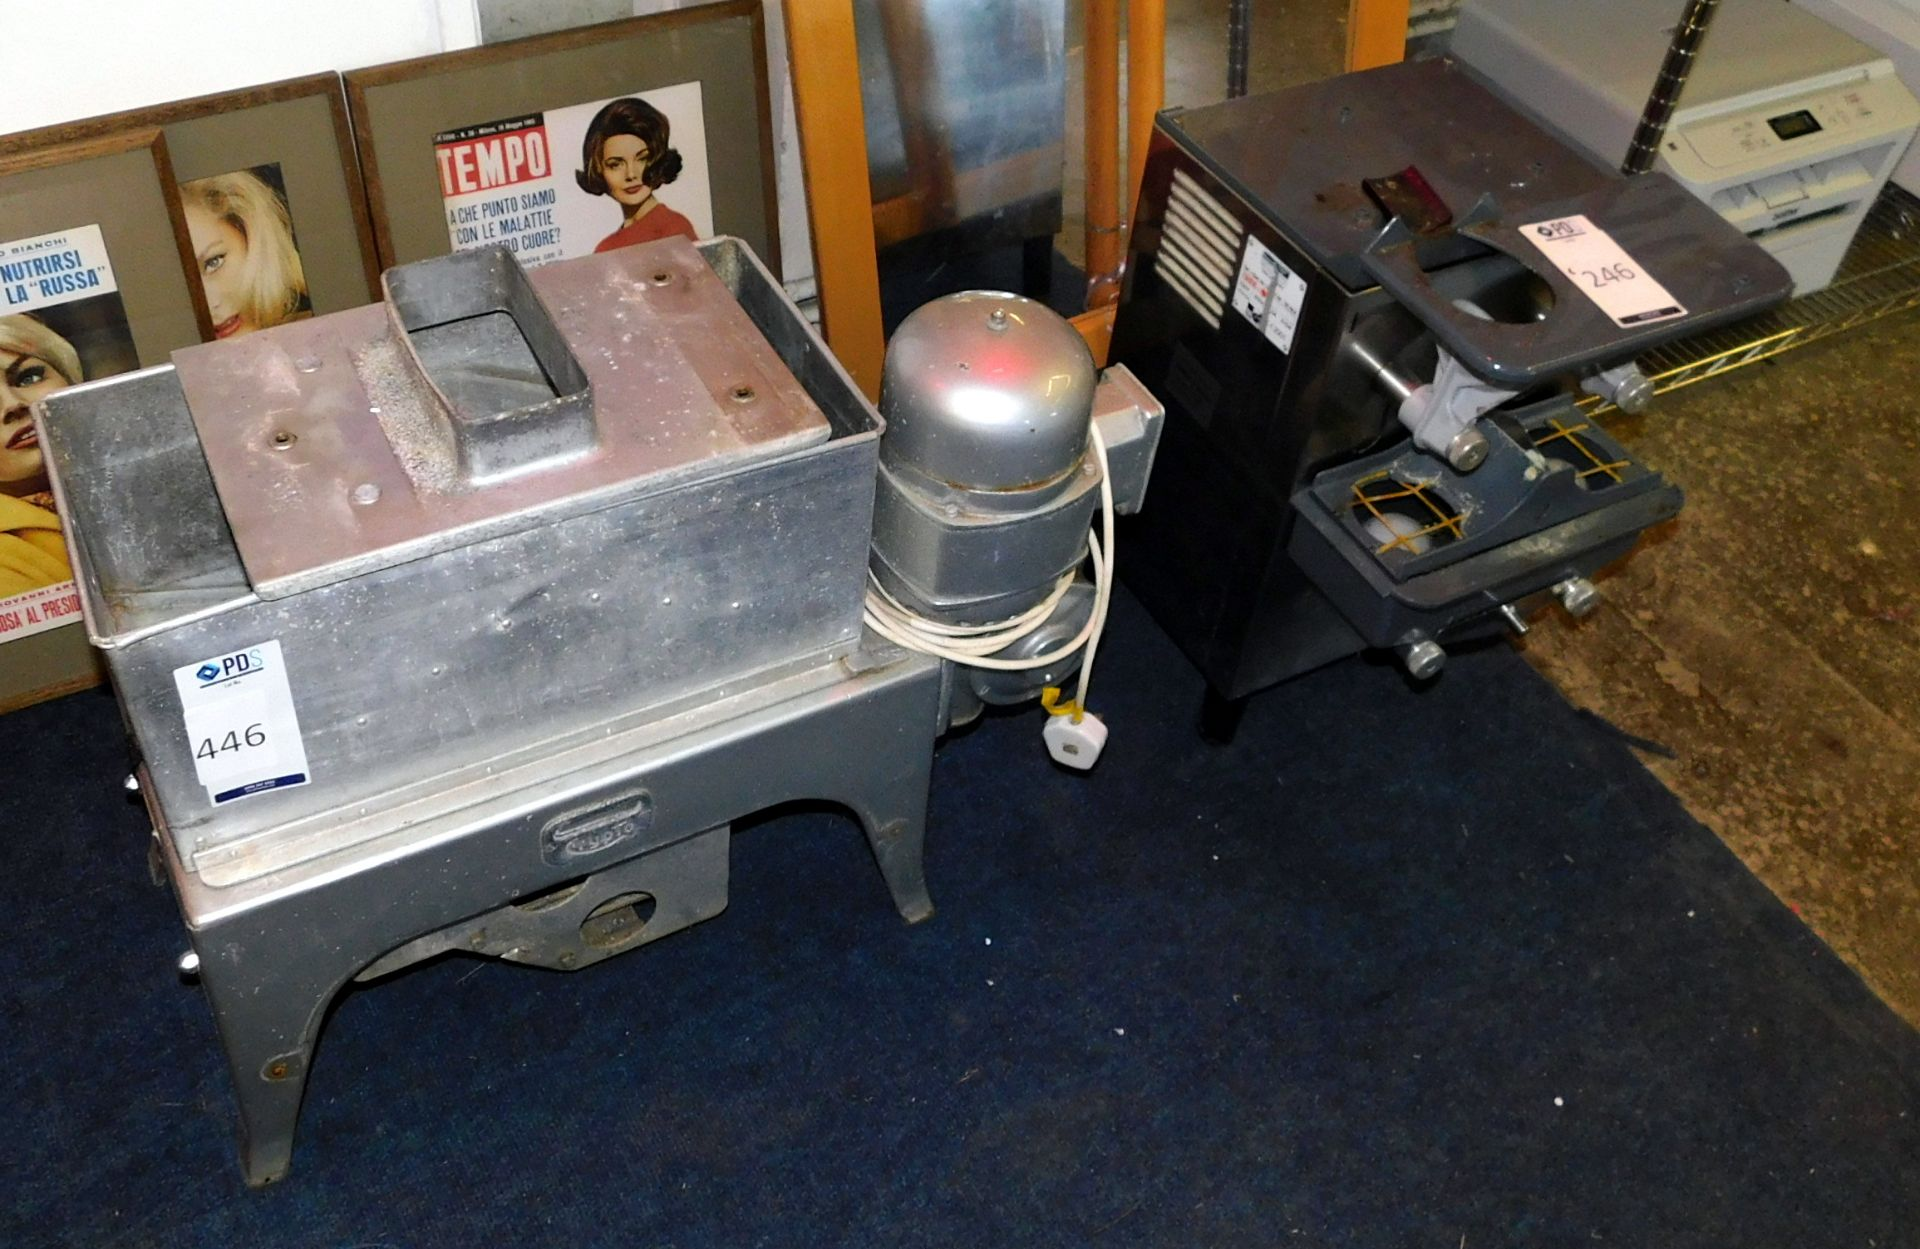 Los 446 - Crypto Food Preparation Machine & Zummo Juicer (For Spares) (Located Stockport – See General Notes